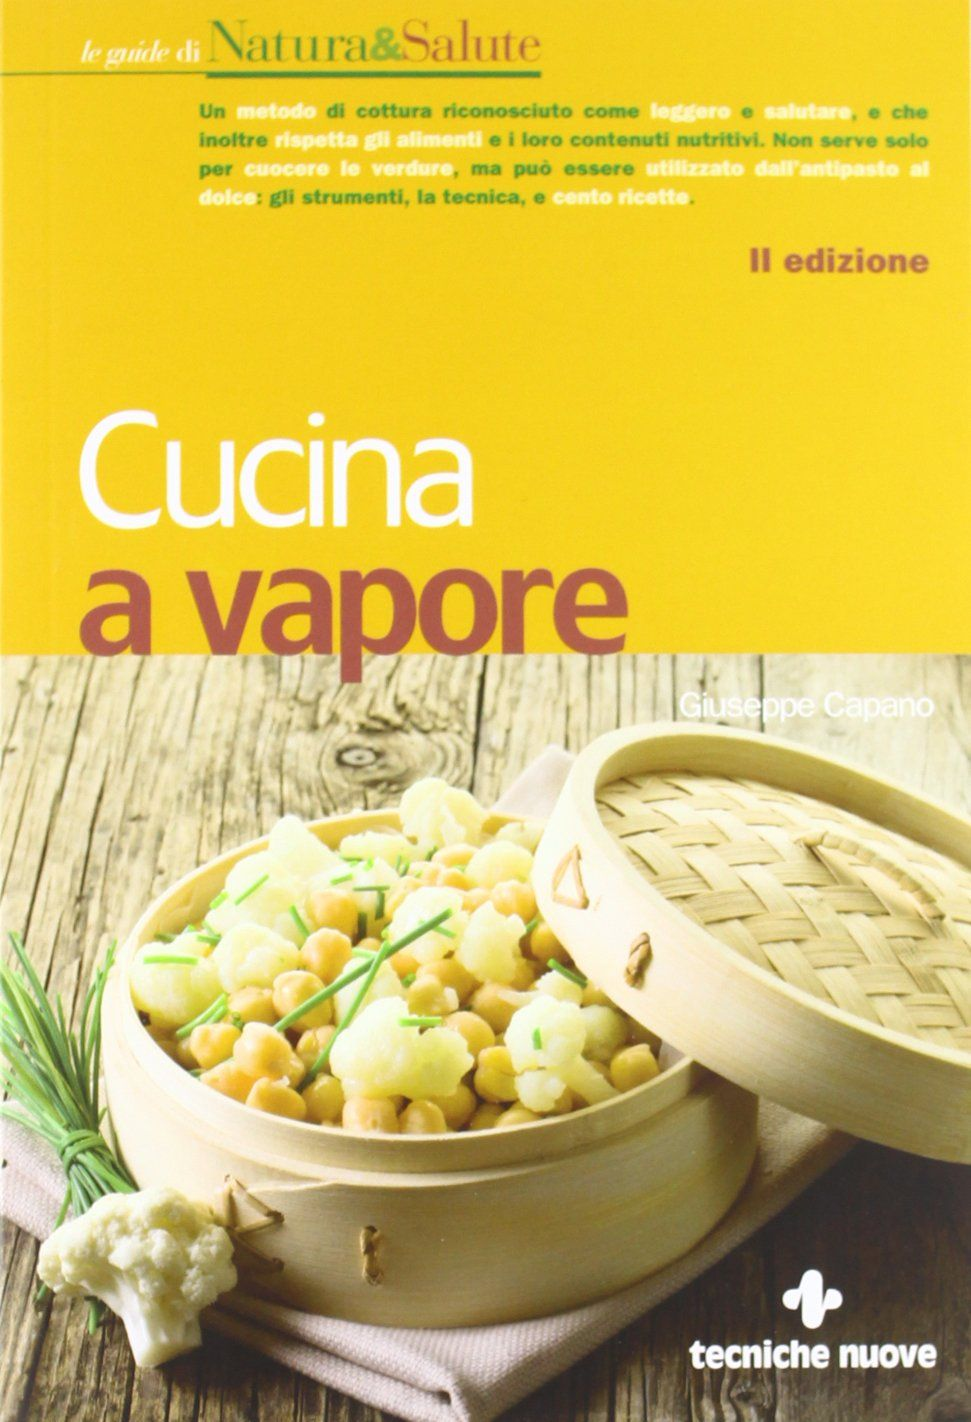 Cucina A Vapore Cucina Vapore E Libro Uleam Vegetables E Food